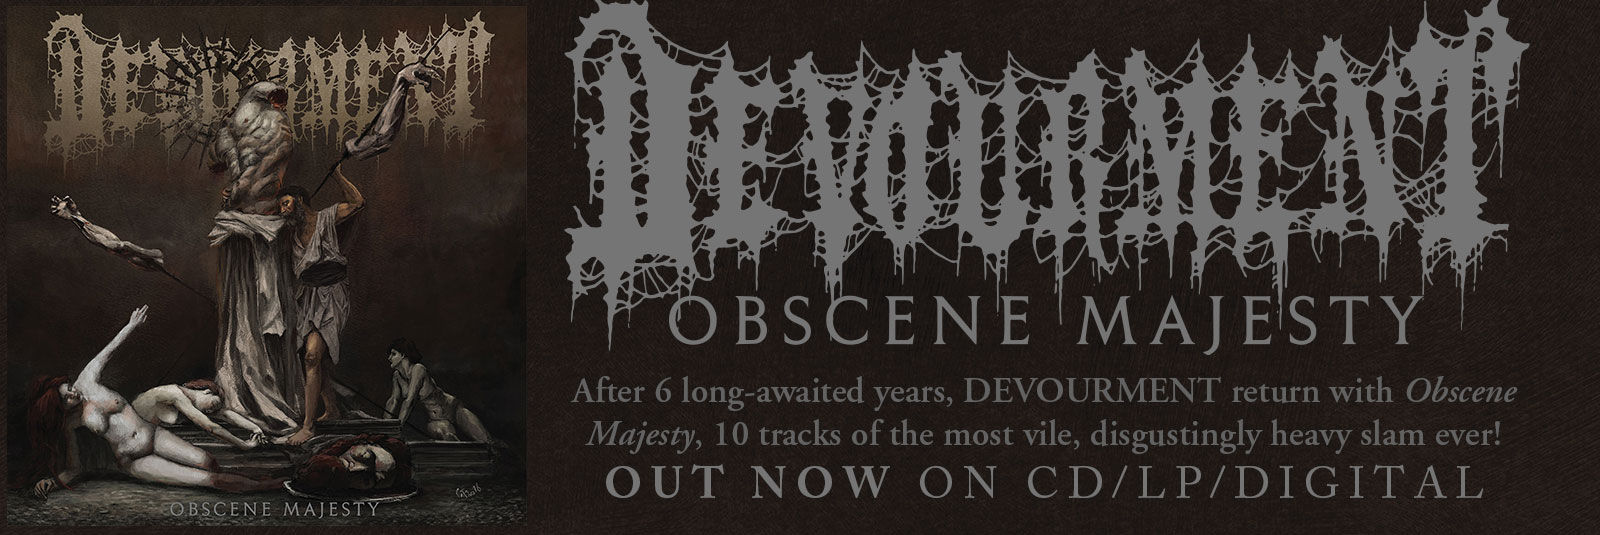 devourment-obscene-majesty-brutal-death-metal-relapse-out-now